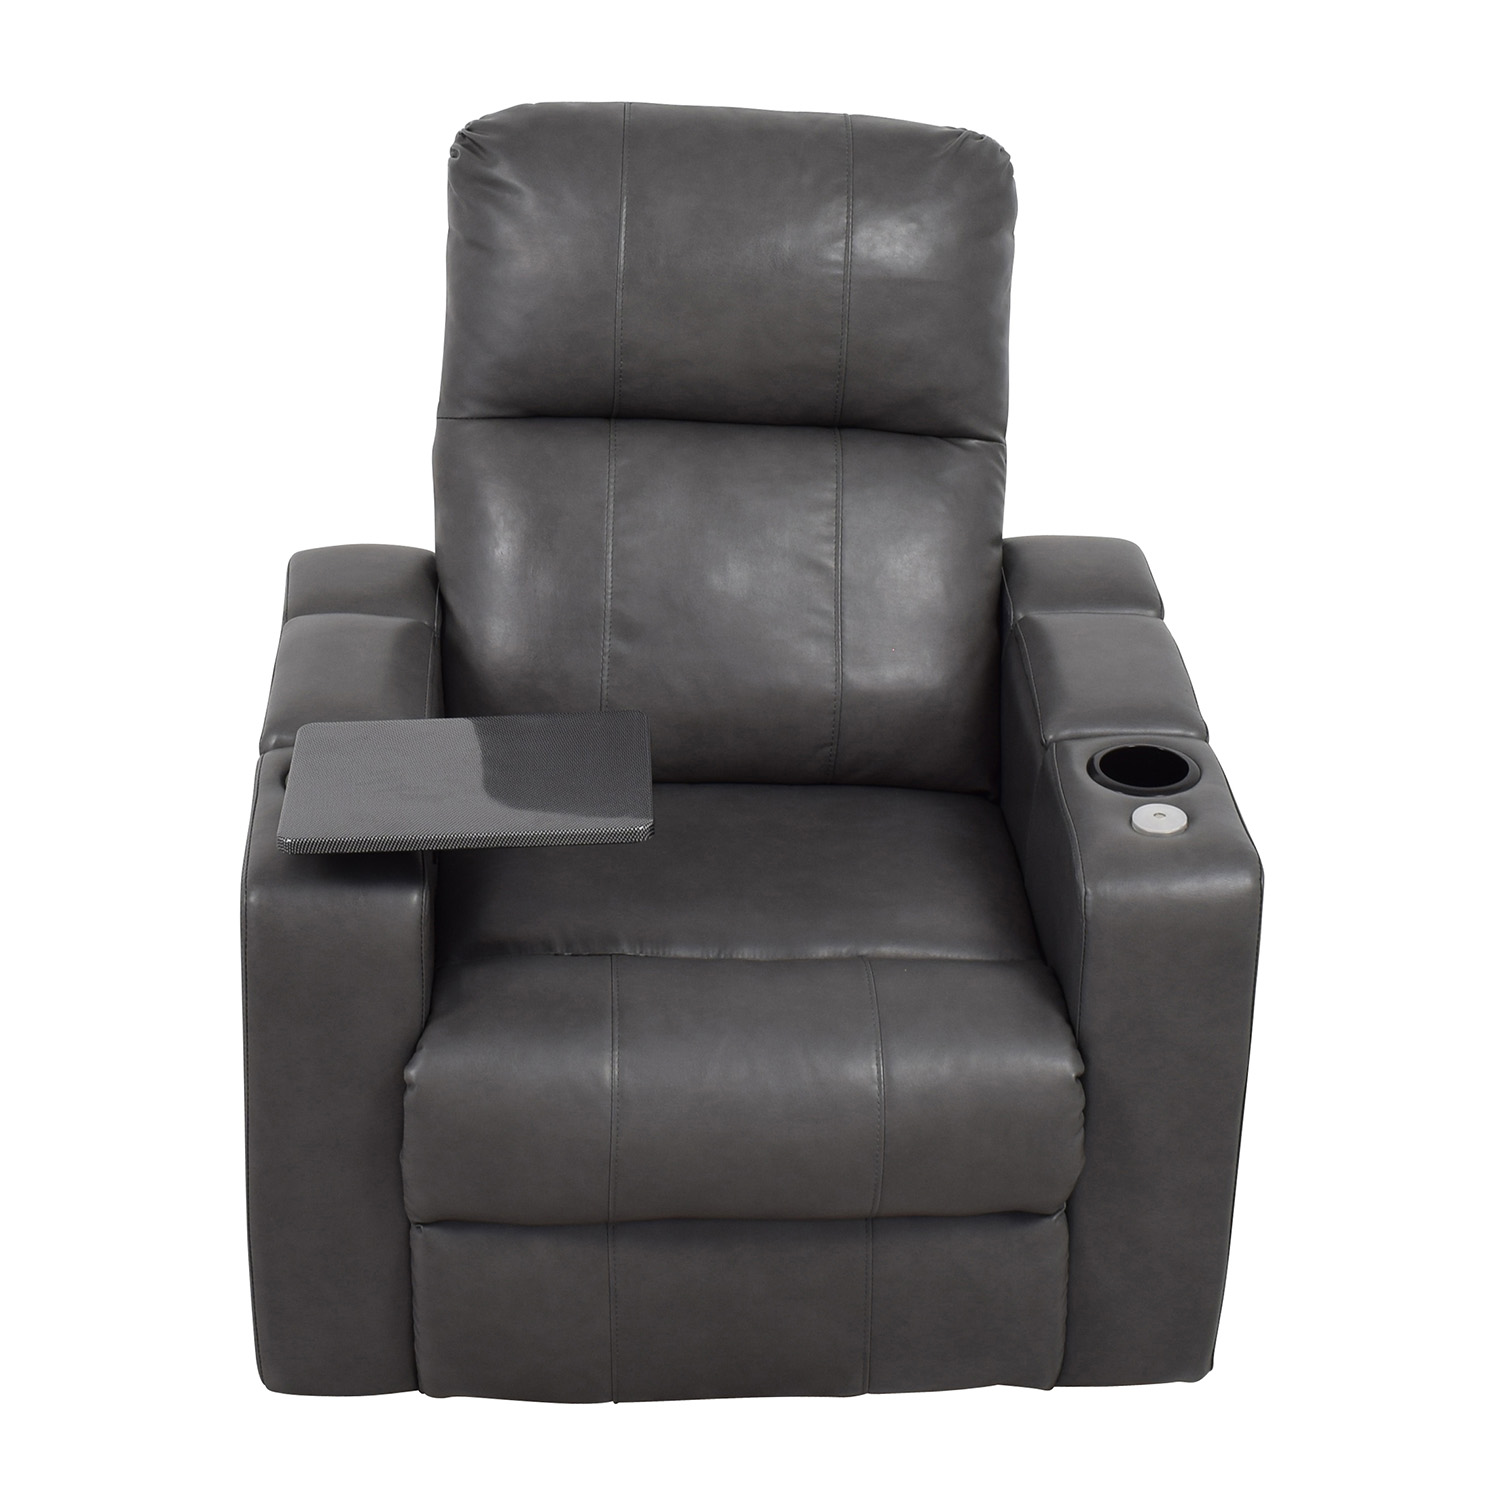 reclining chairs for sale round base chair recliners used